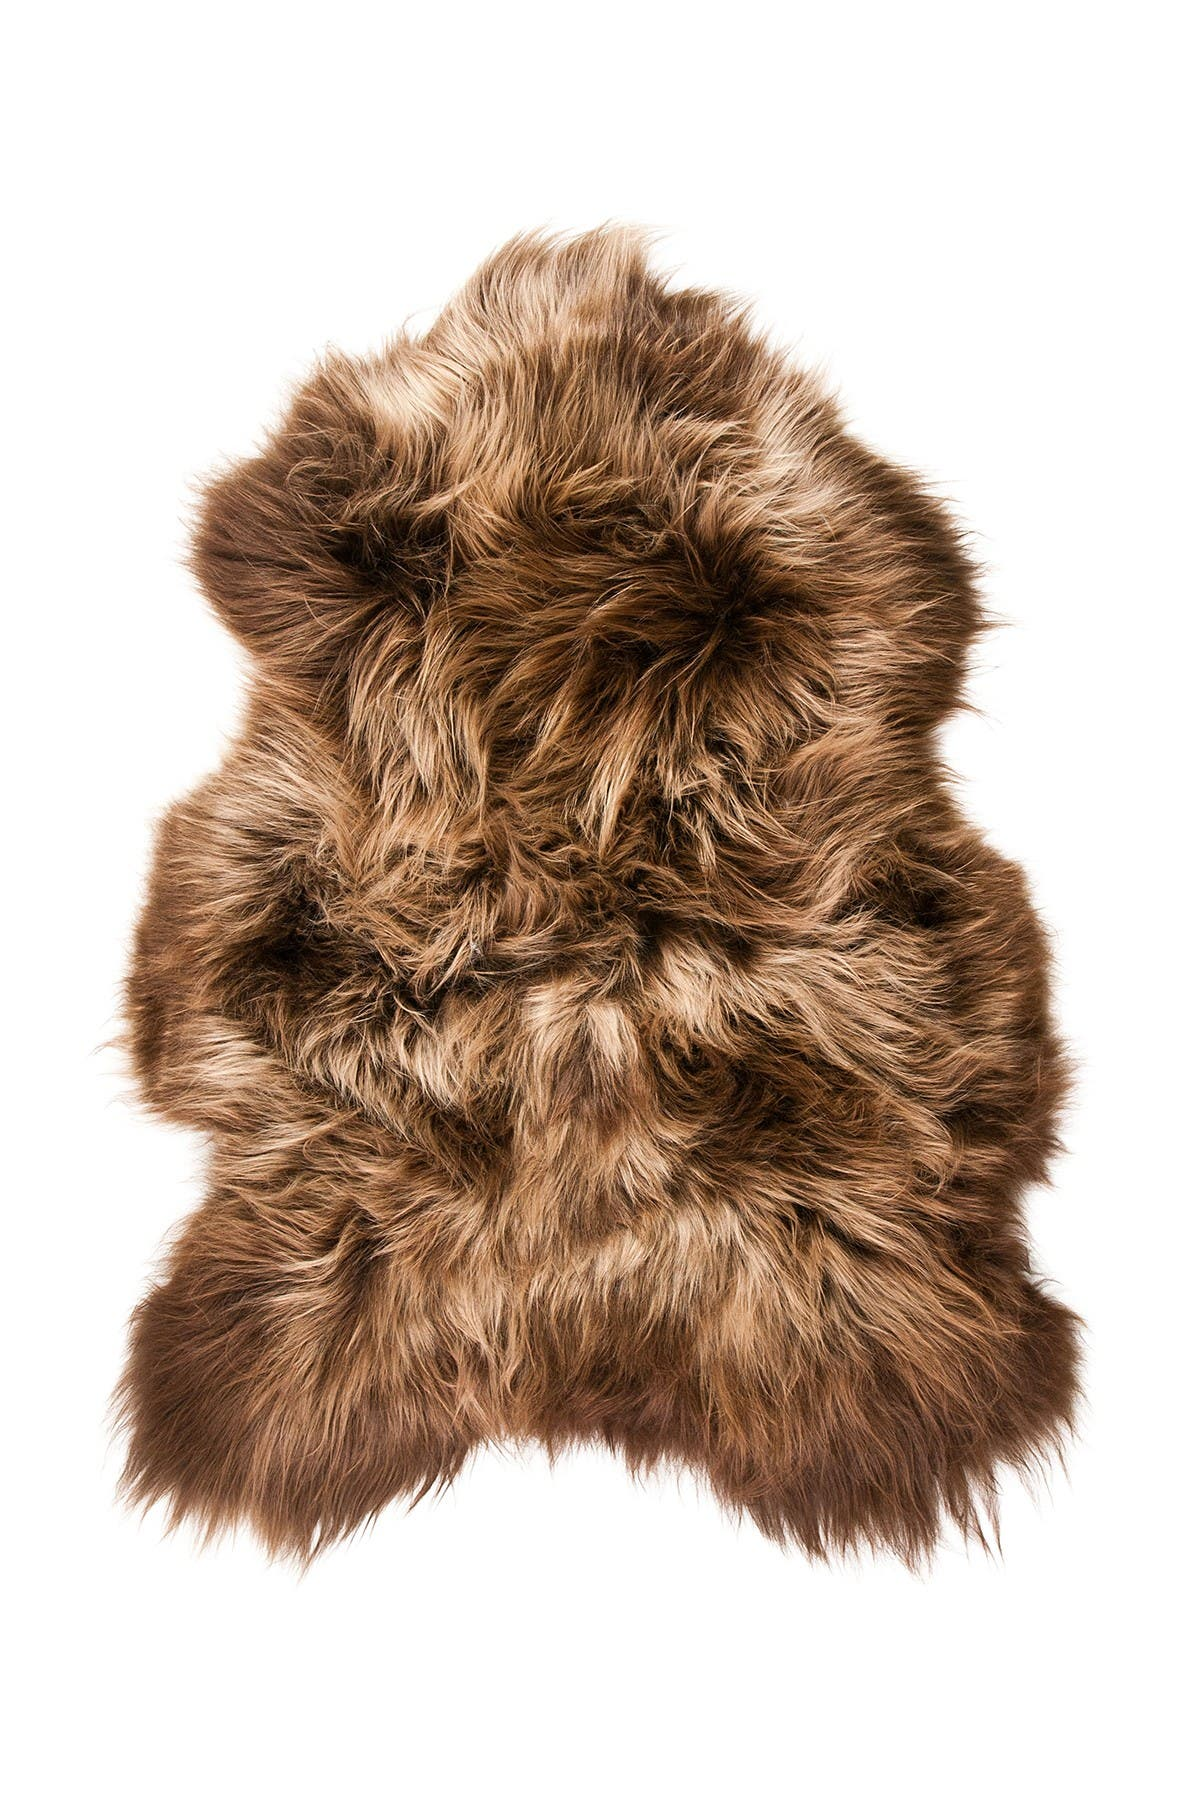 Image of Natural Icelandic Genuine Genuine Sheepskin Shearling Shearling Long-Haired Rug - 2ft x 3ft - Rusty Brisa